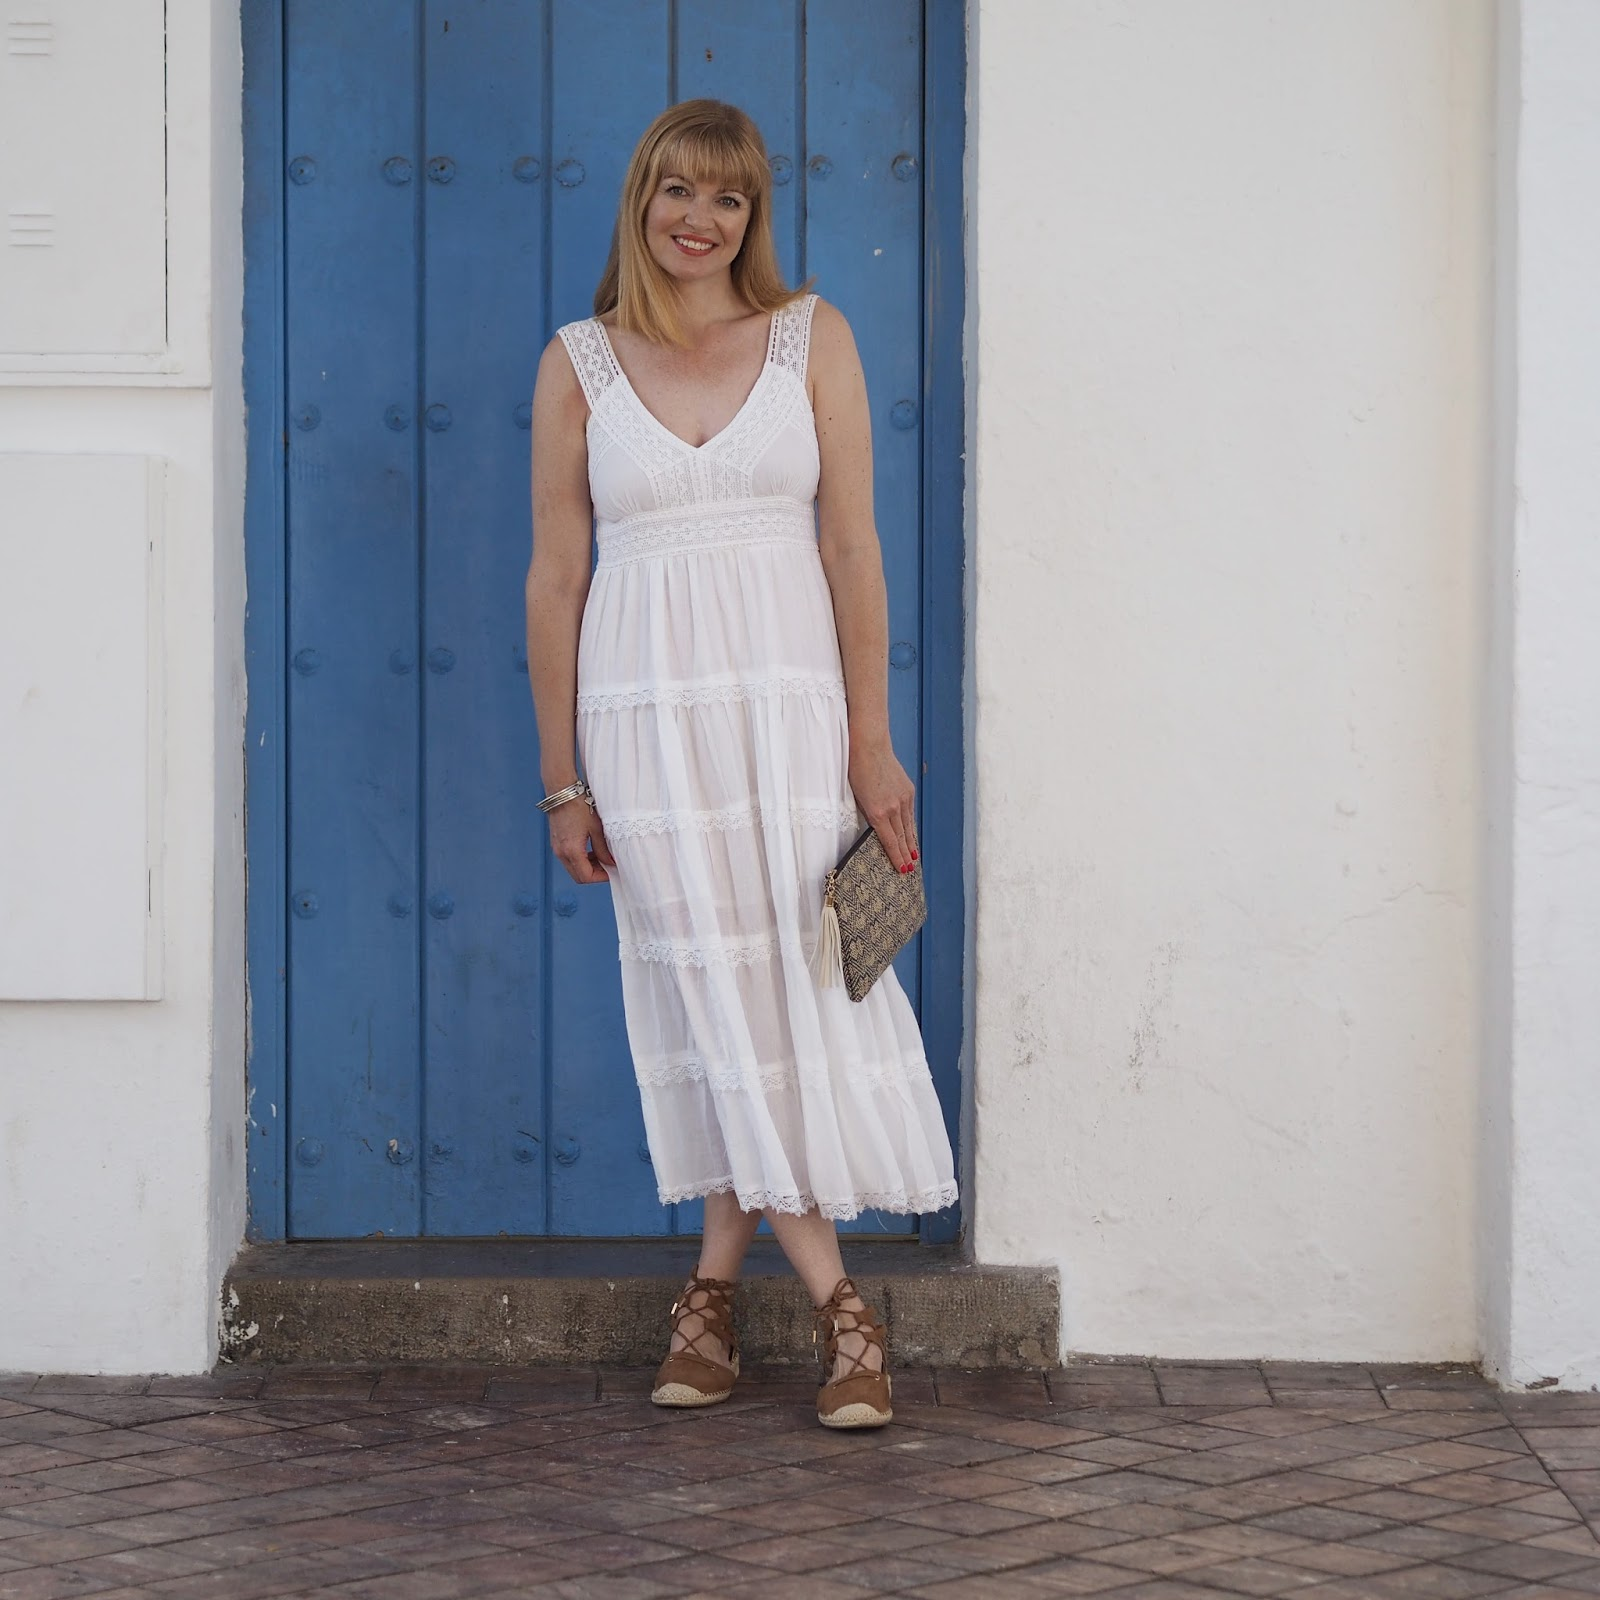 Nerja-packing-white-dress-espadrilles-blue-door